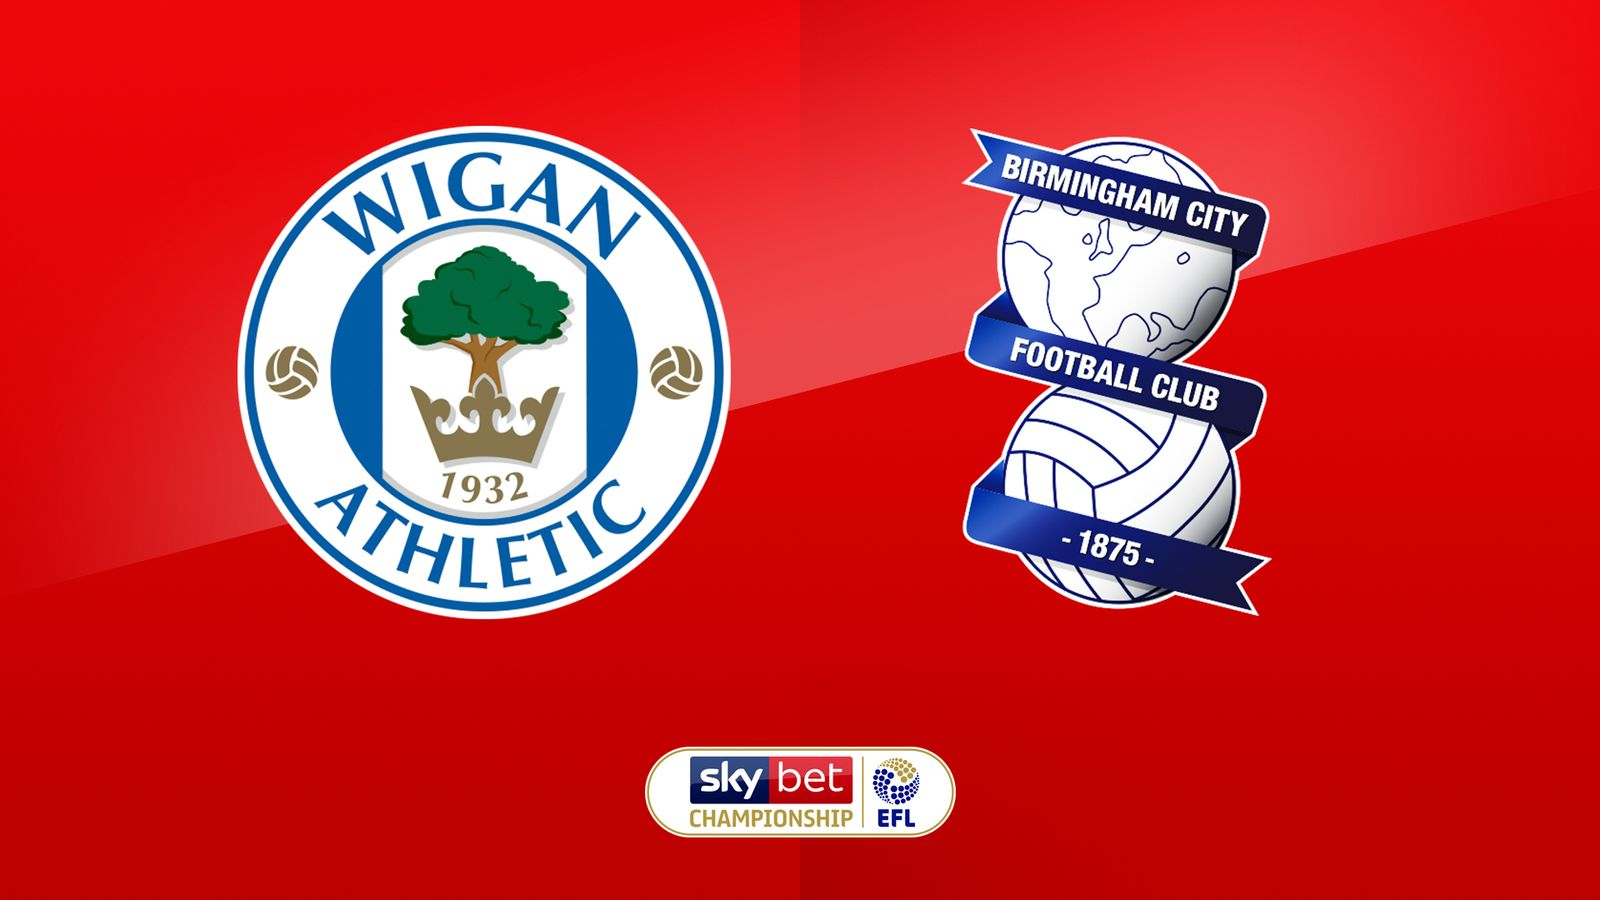 Wigan vs Birmingham preview: Championship clash live on Sky Sports Action